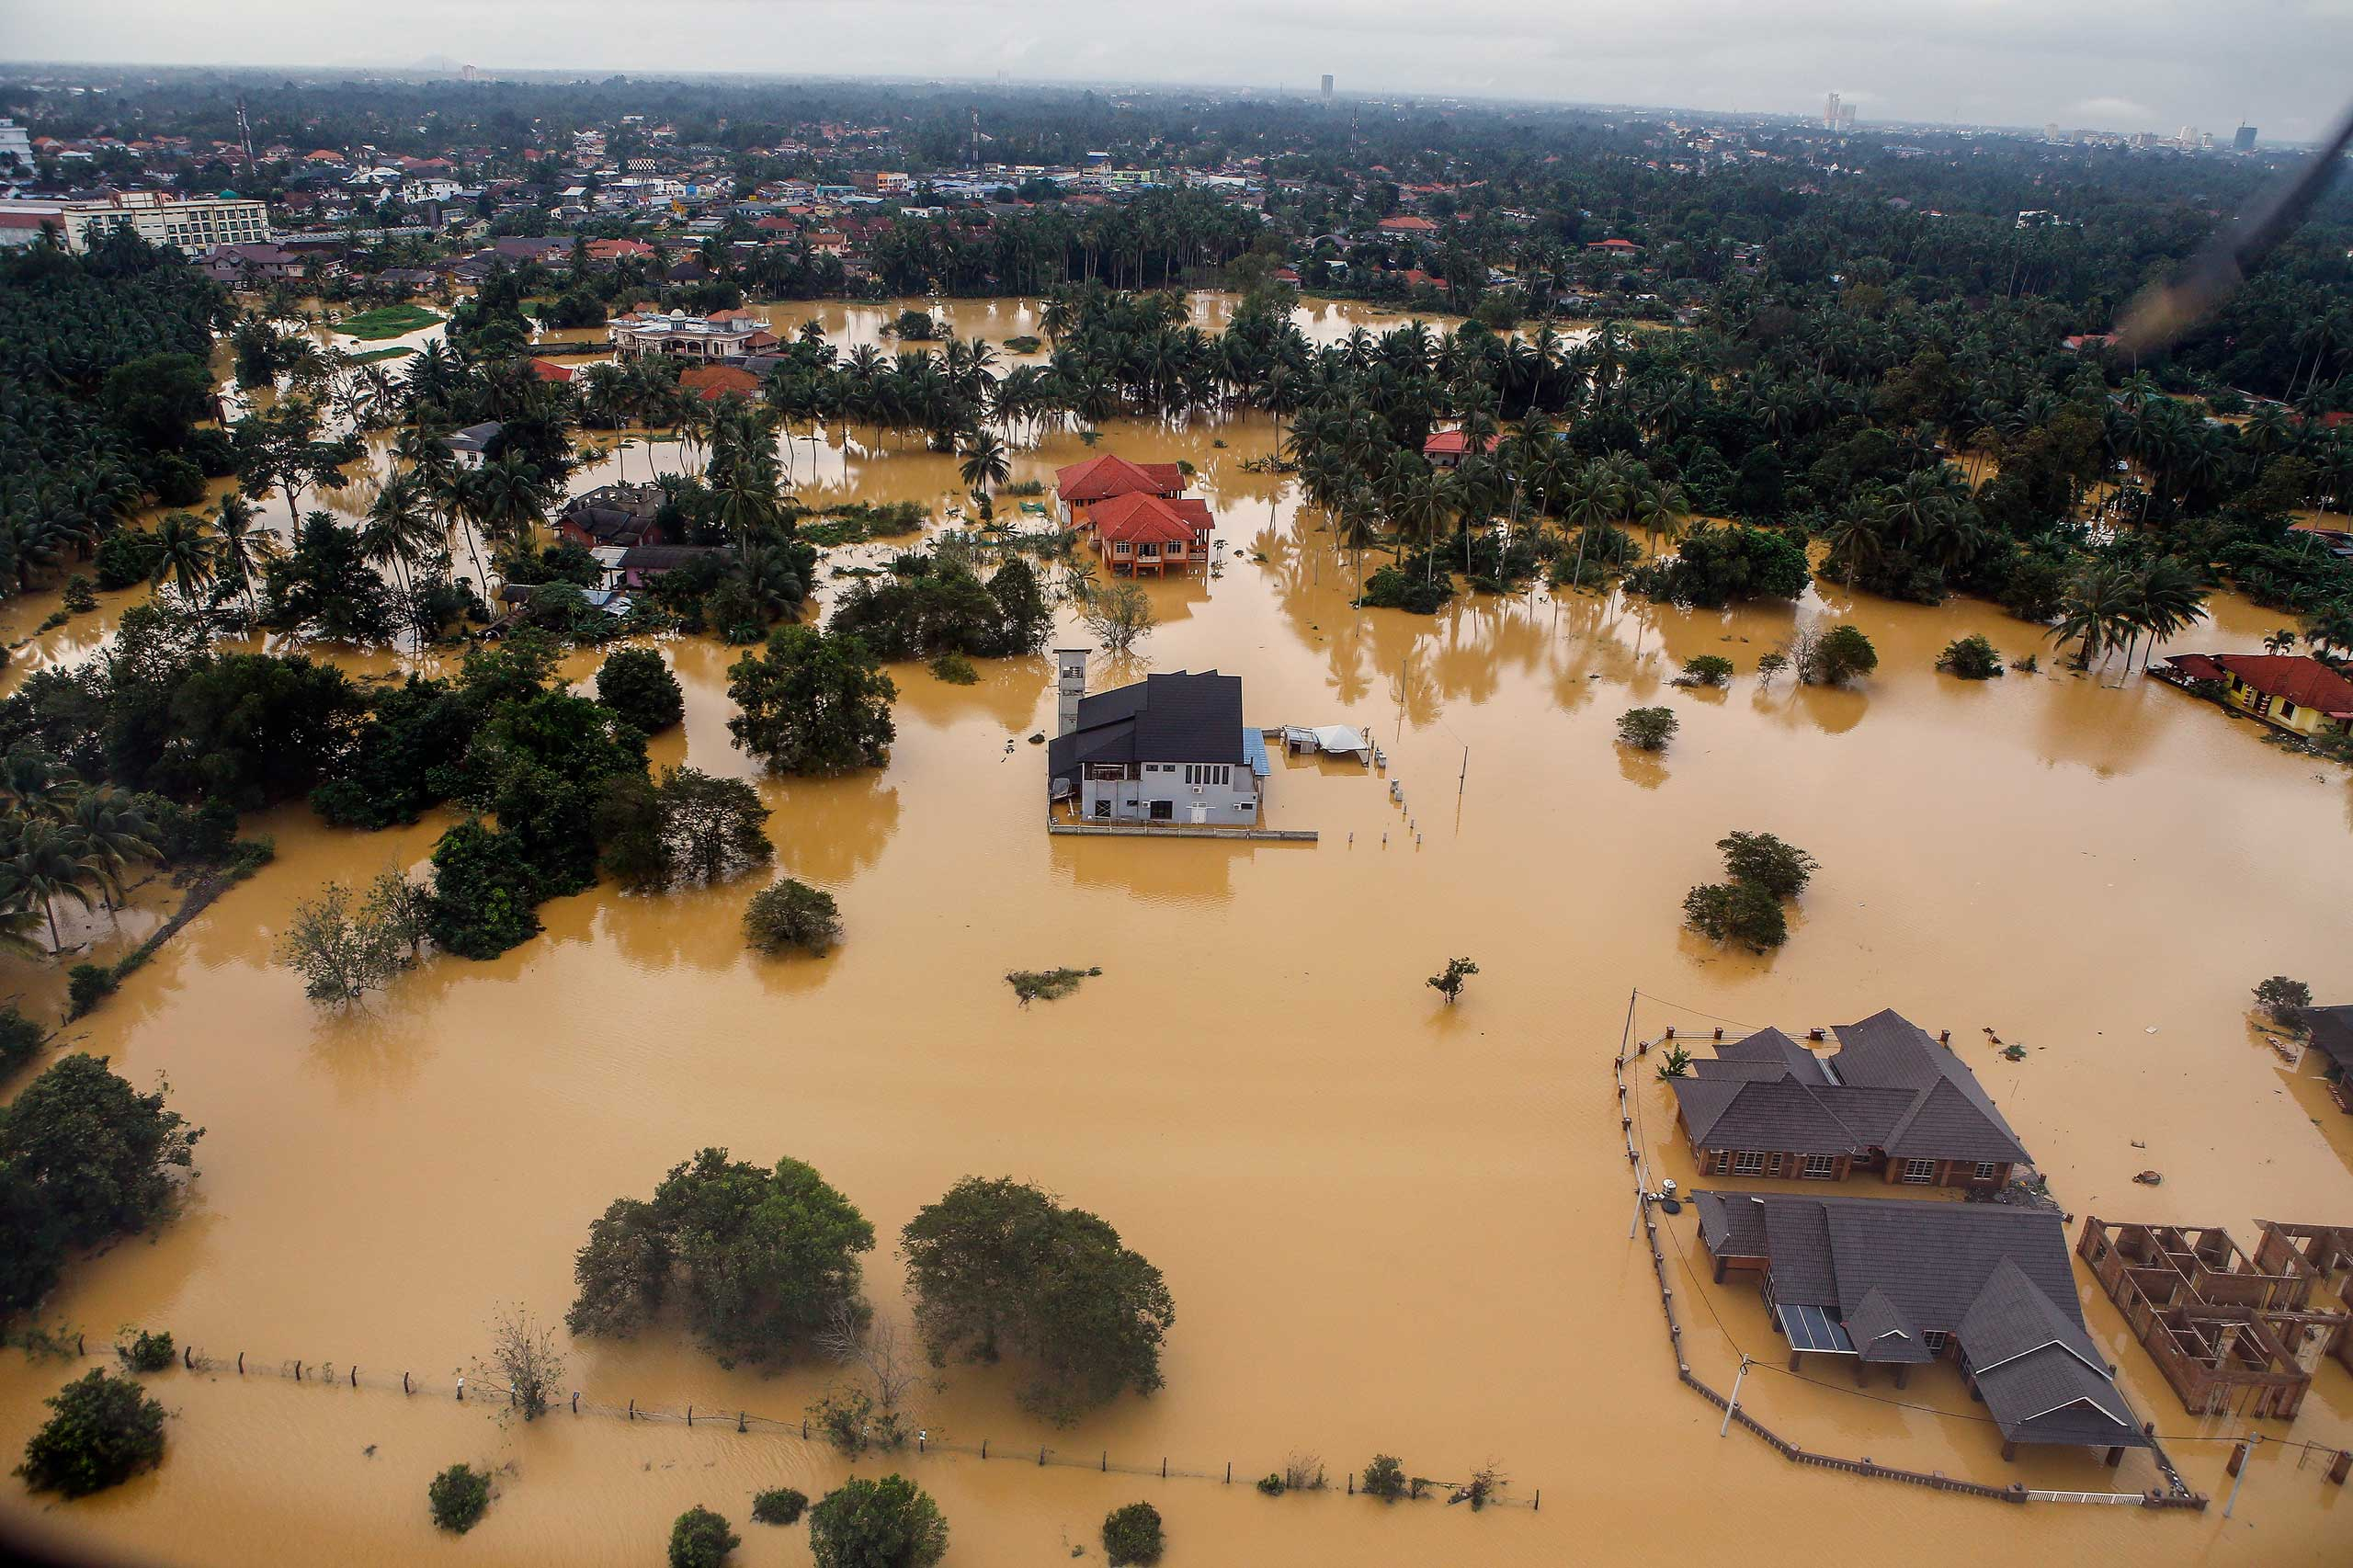 An aerial view of a settlement submerged by floodwaters in the Pengkalan Chepa district of Kelantan, Malaysia, Dec. 28, 2014.